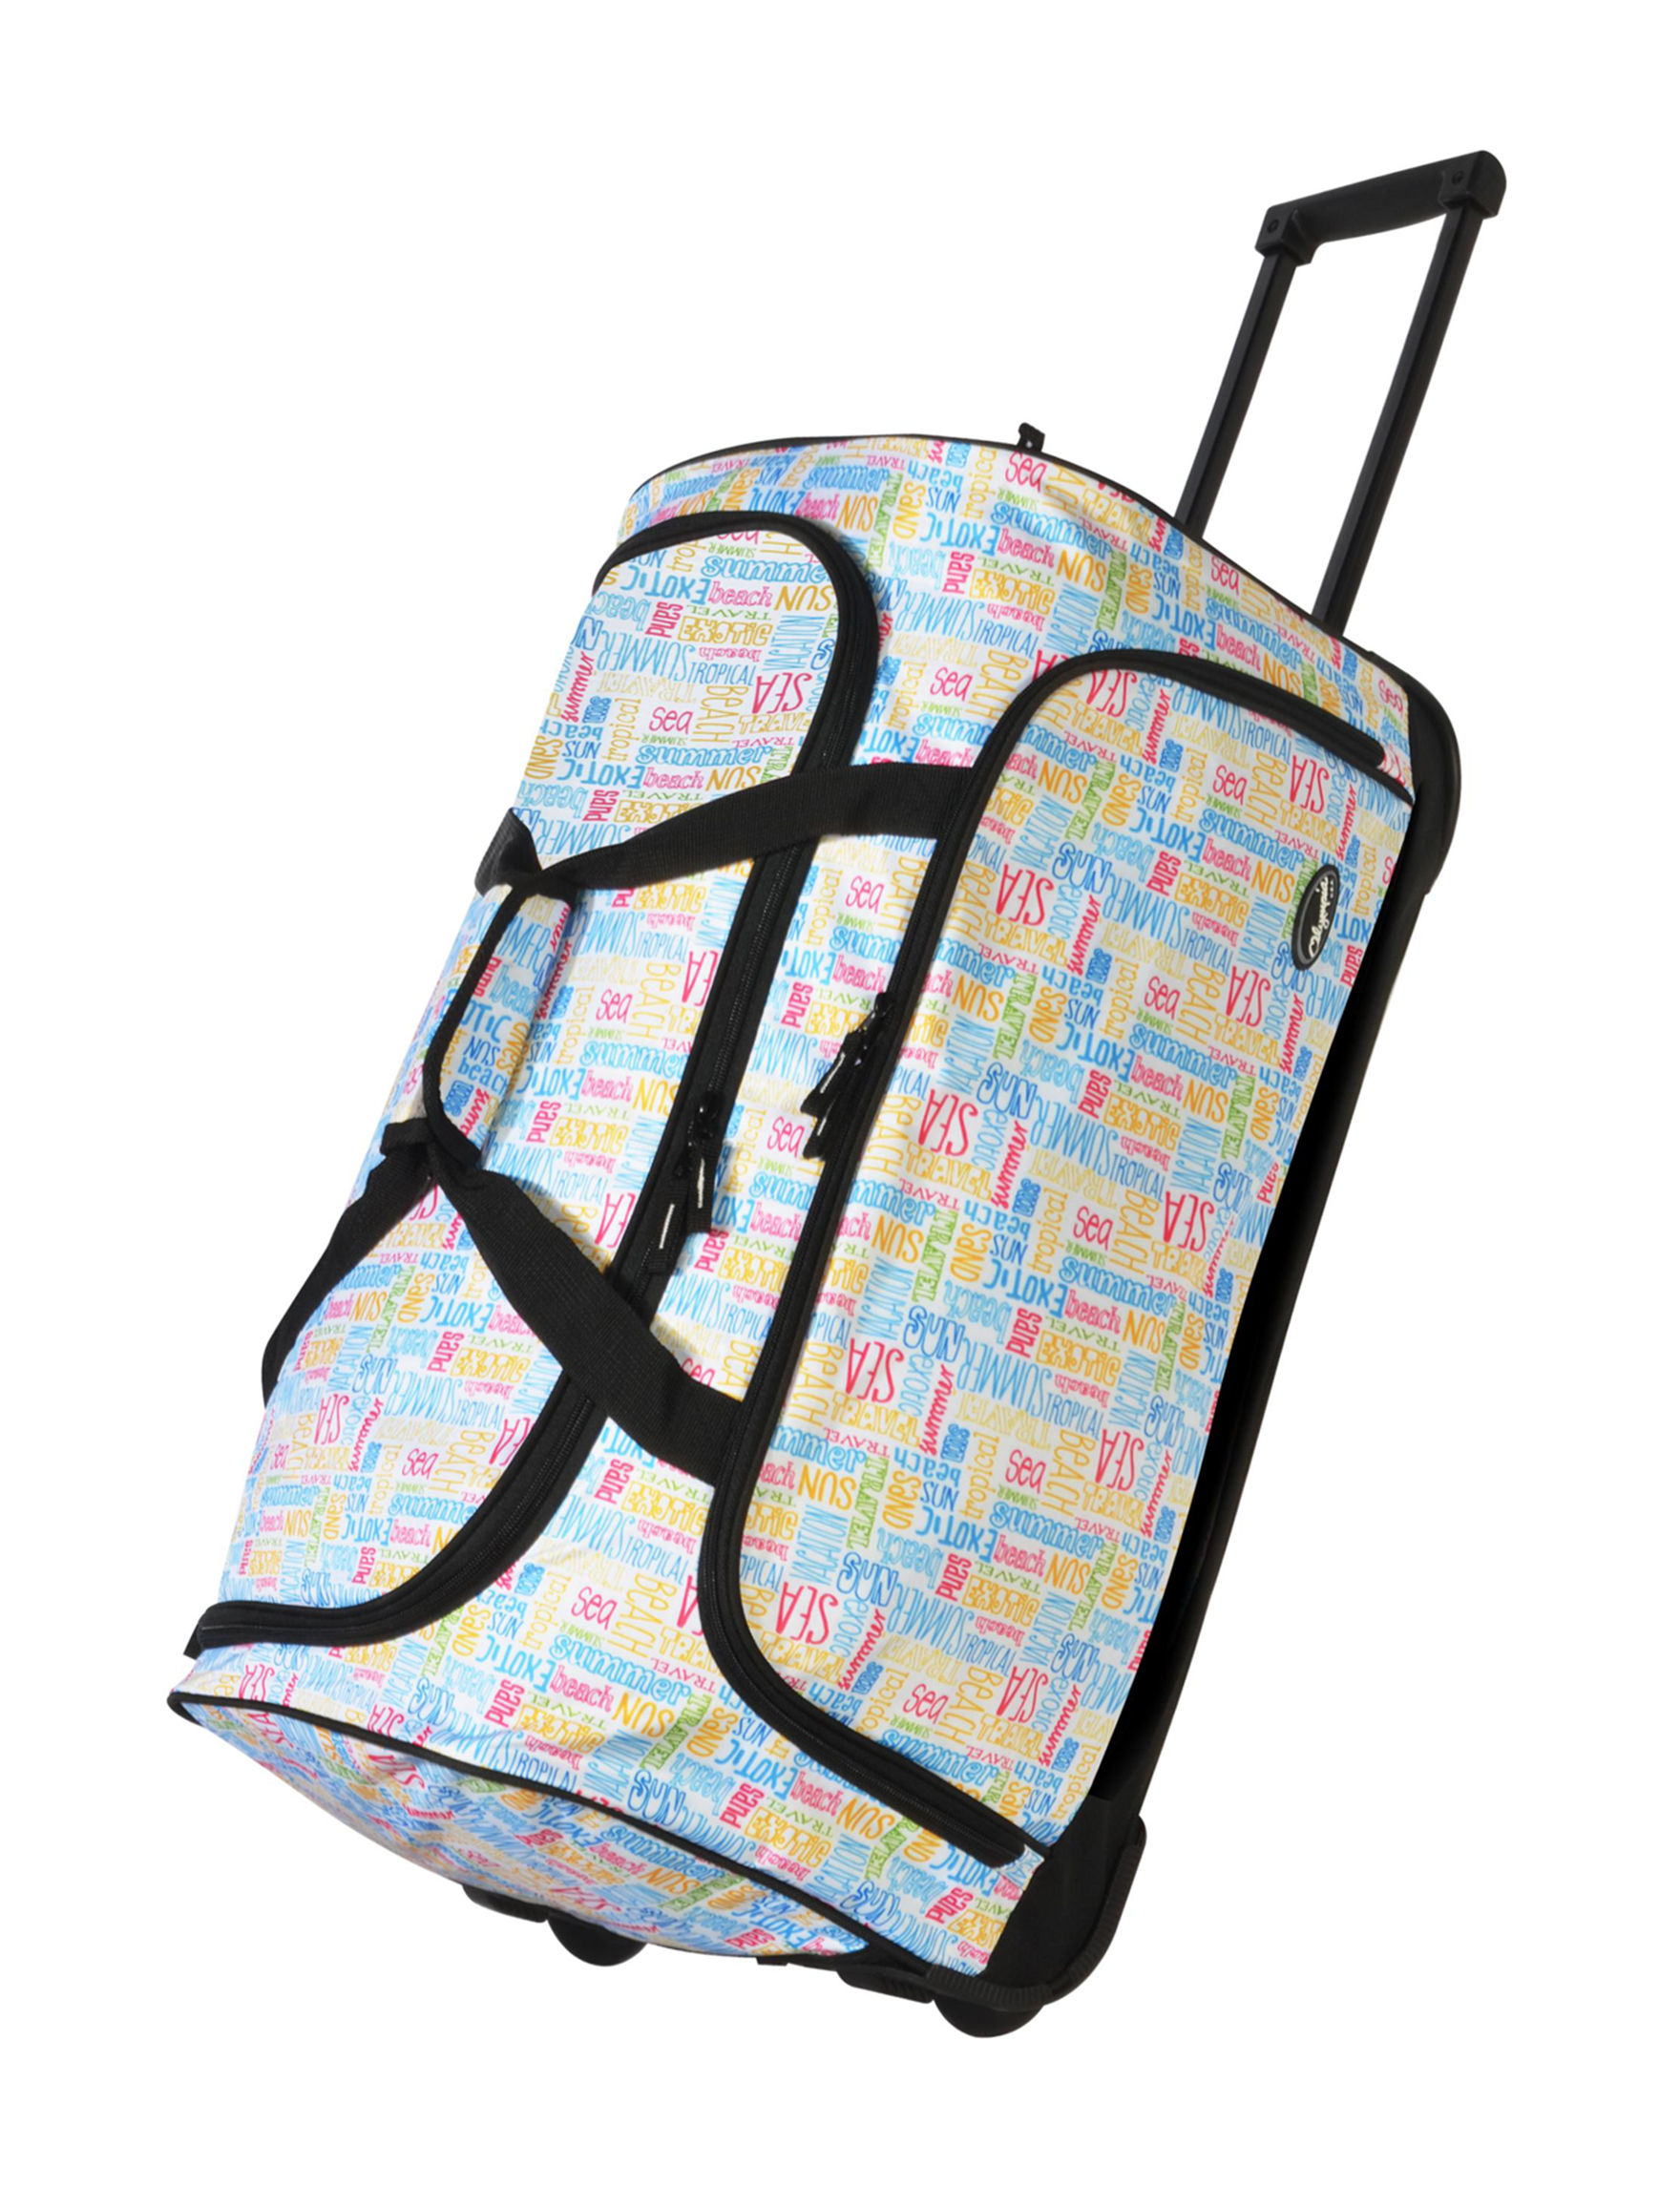 Olympia Blue / Multi Carry On Luggage Duffle Bags Weekend Bags